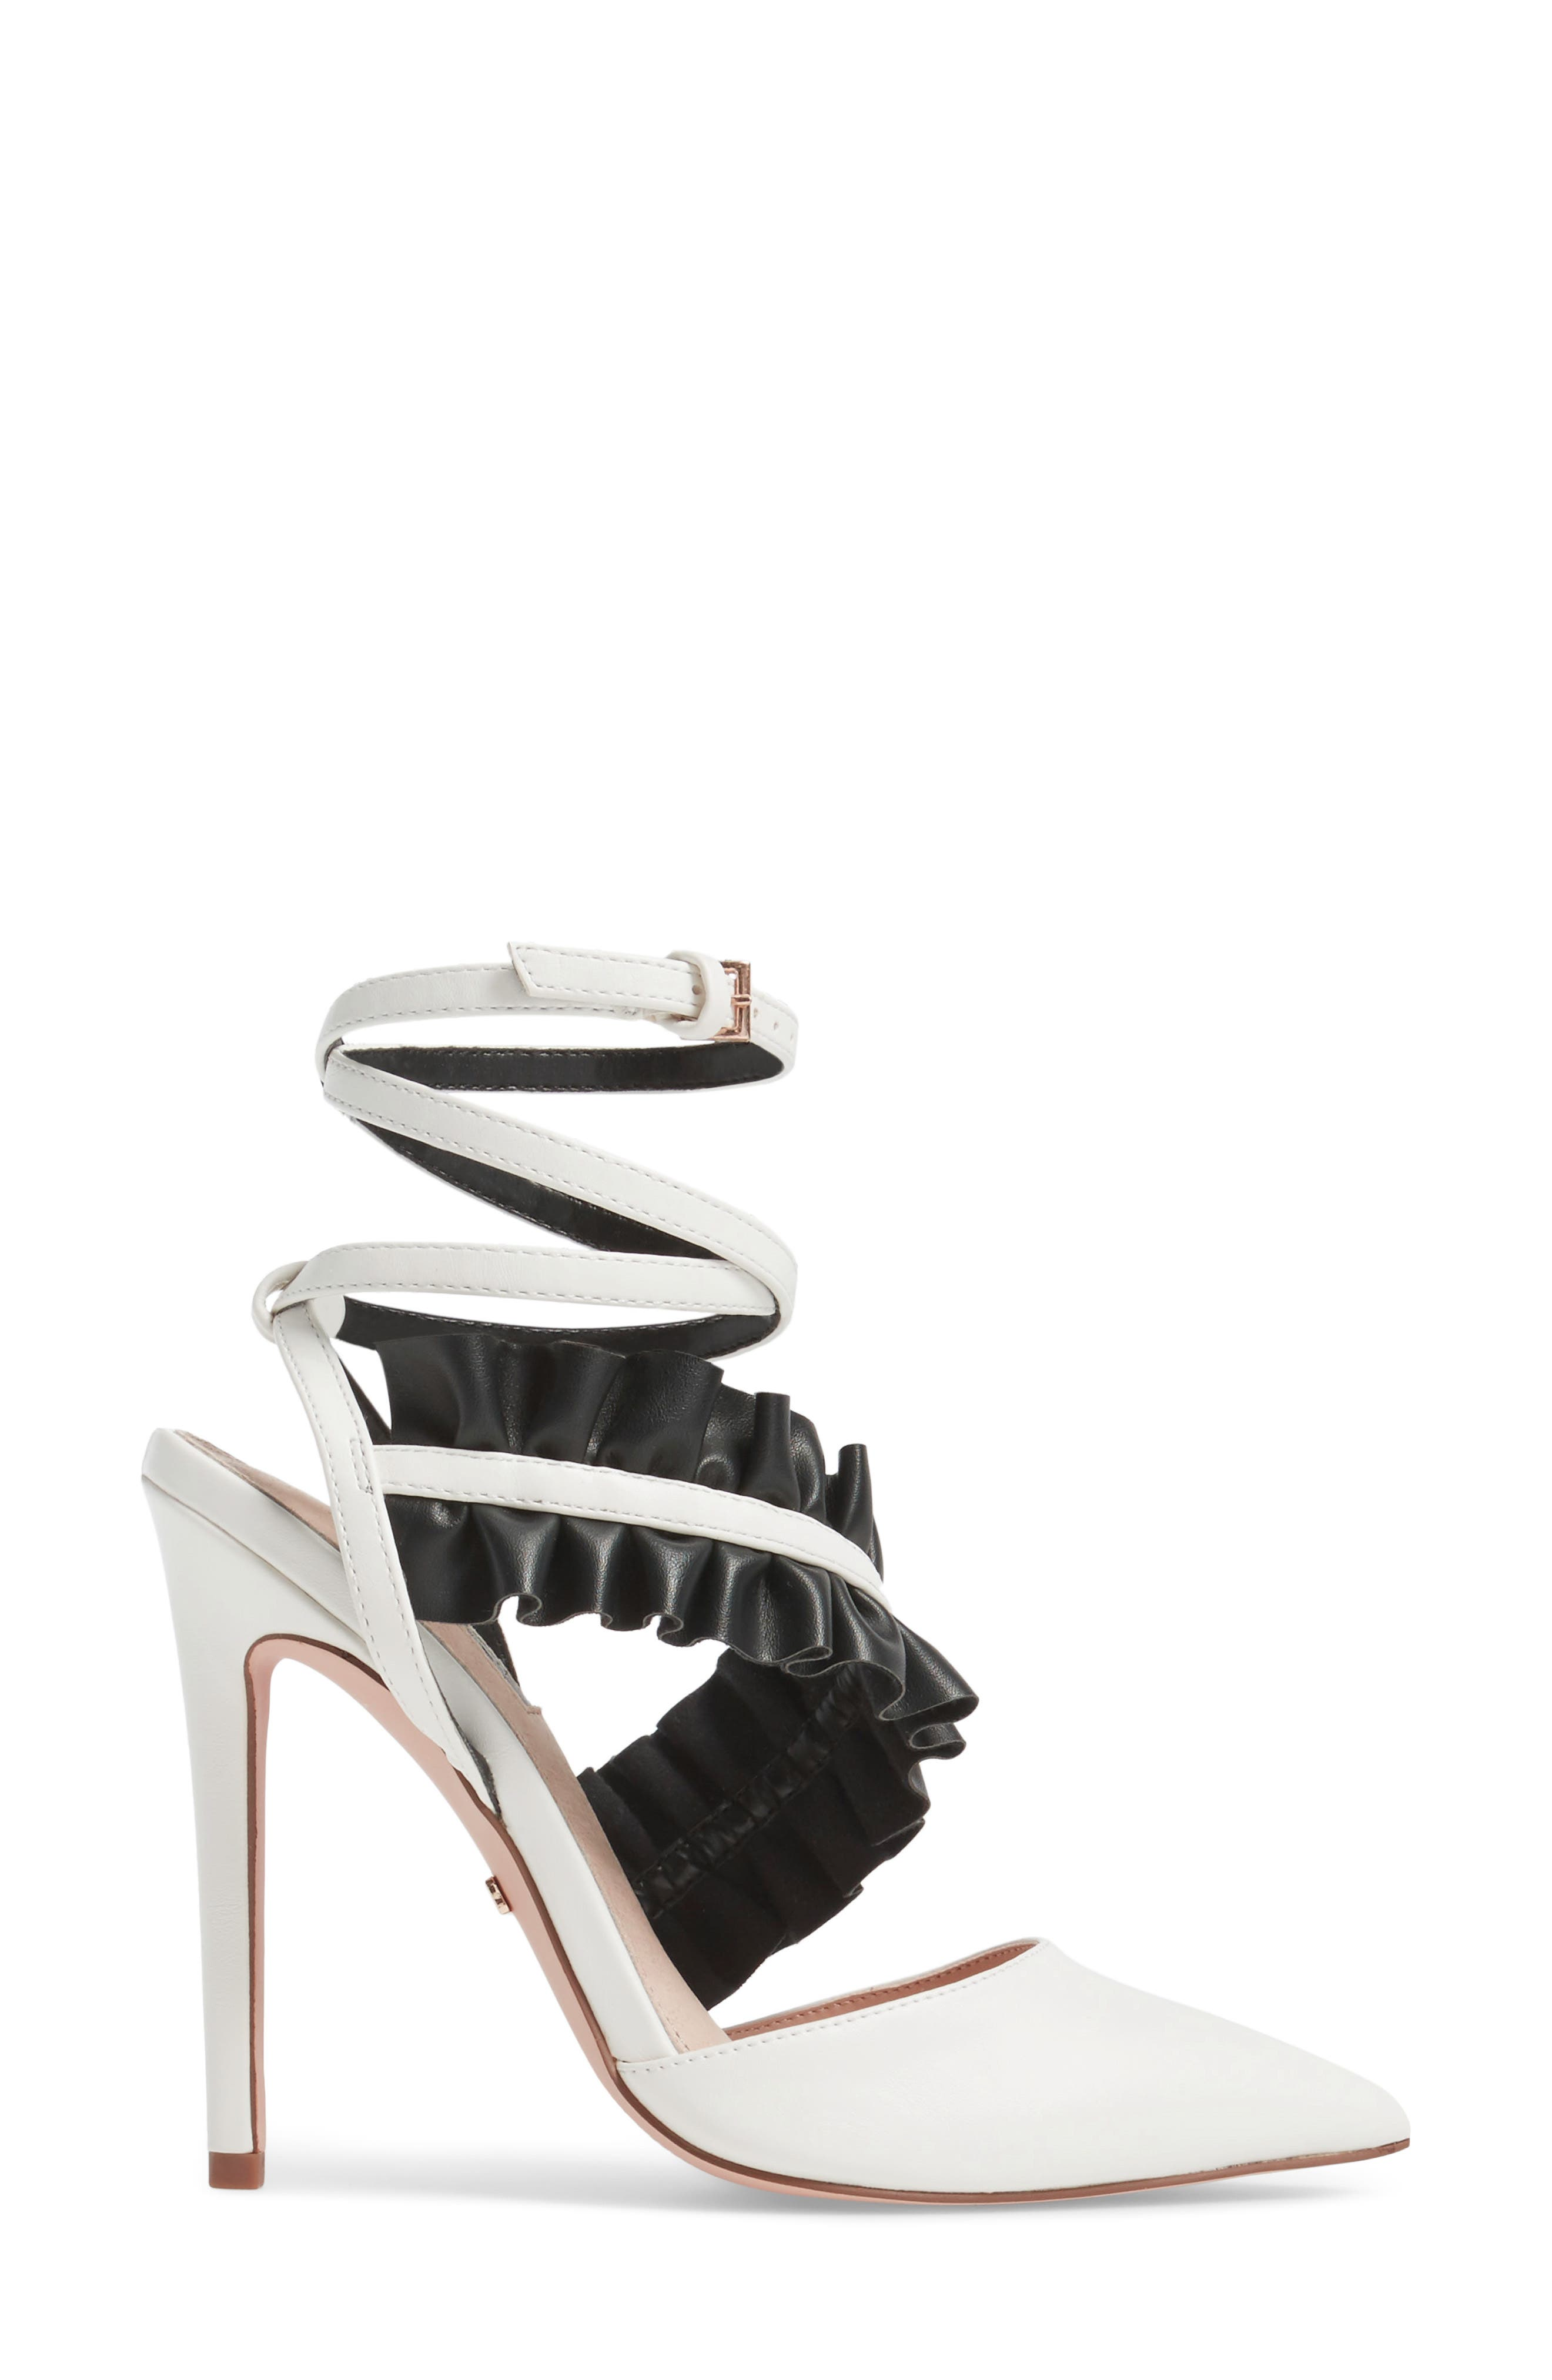 Grill Frill Ankle Strap Pump,                             Alternate thumbnail 4, color,                             White Multi